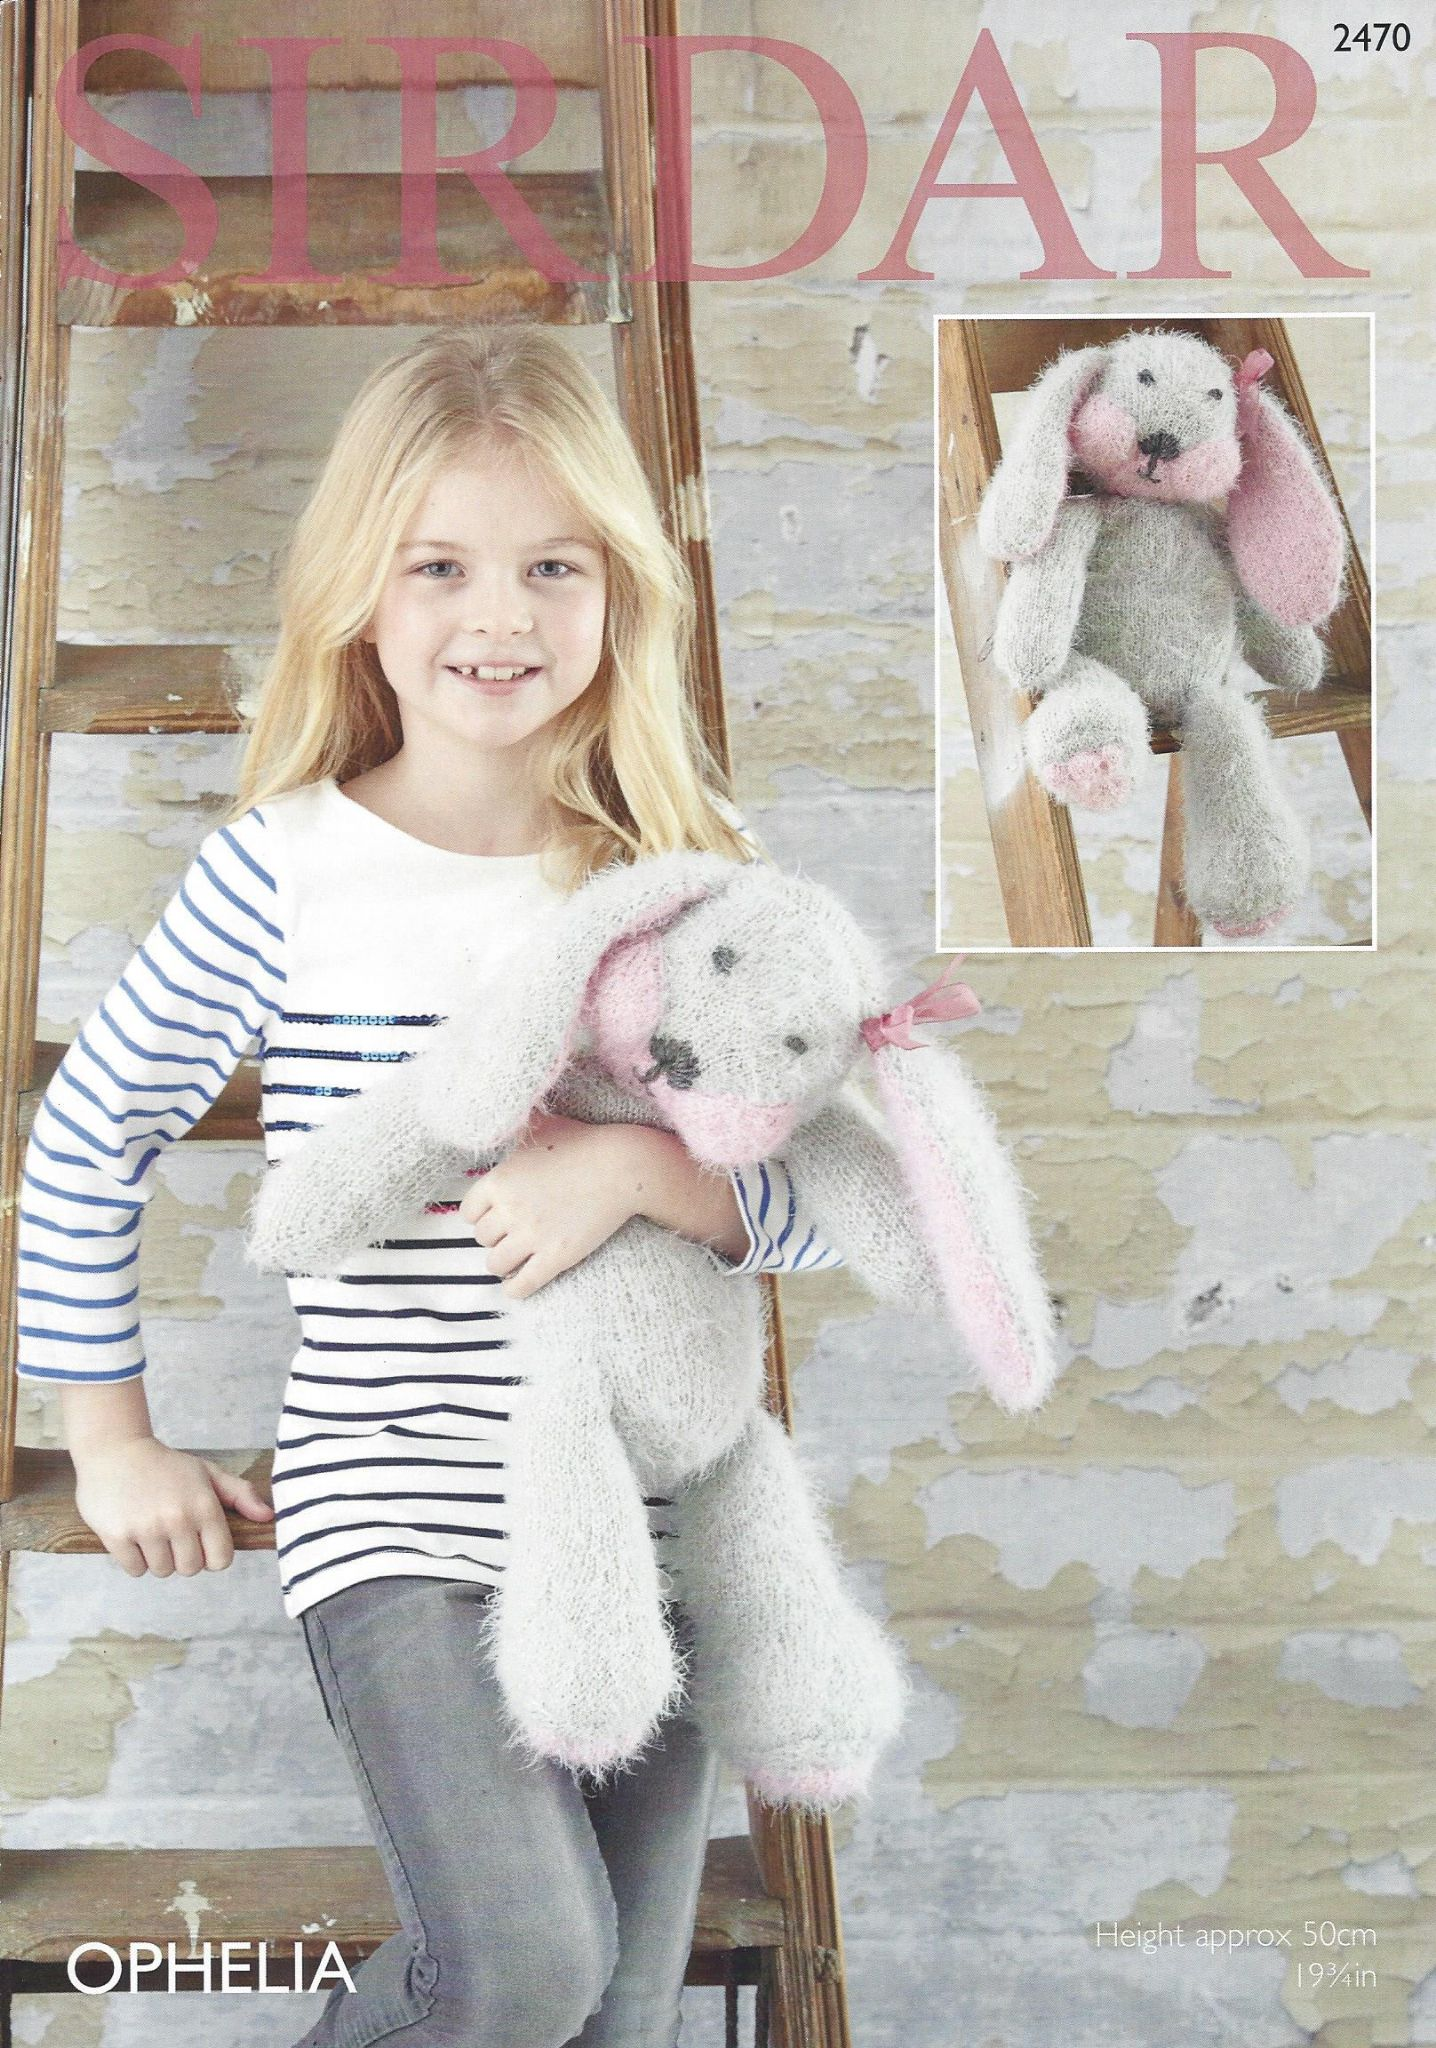 Sirdar Knitting Patterns Toys : Sirdar Ophelia - 2470 Rabbit Toy Knitting Pattern